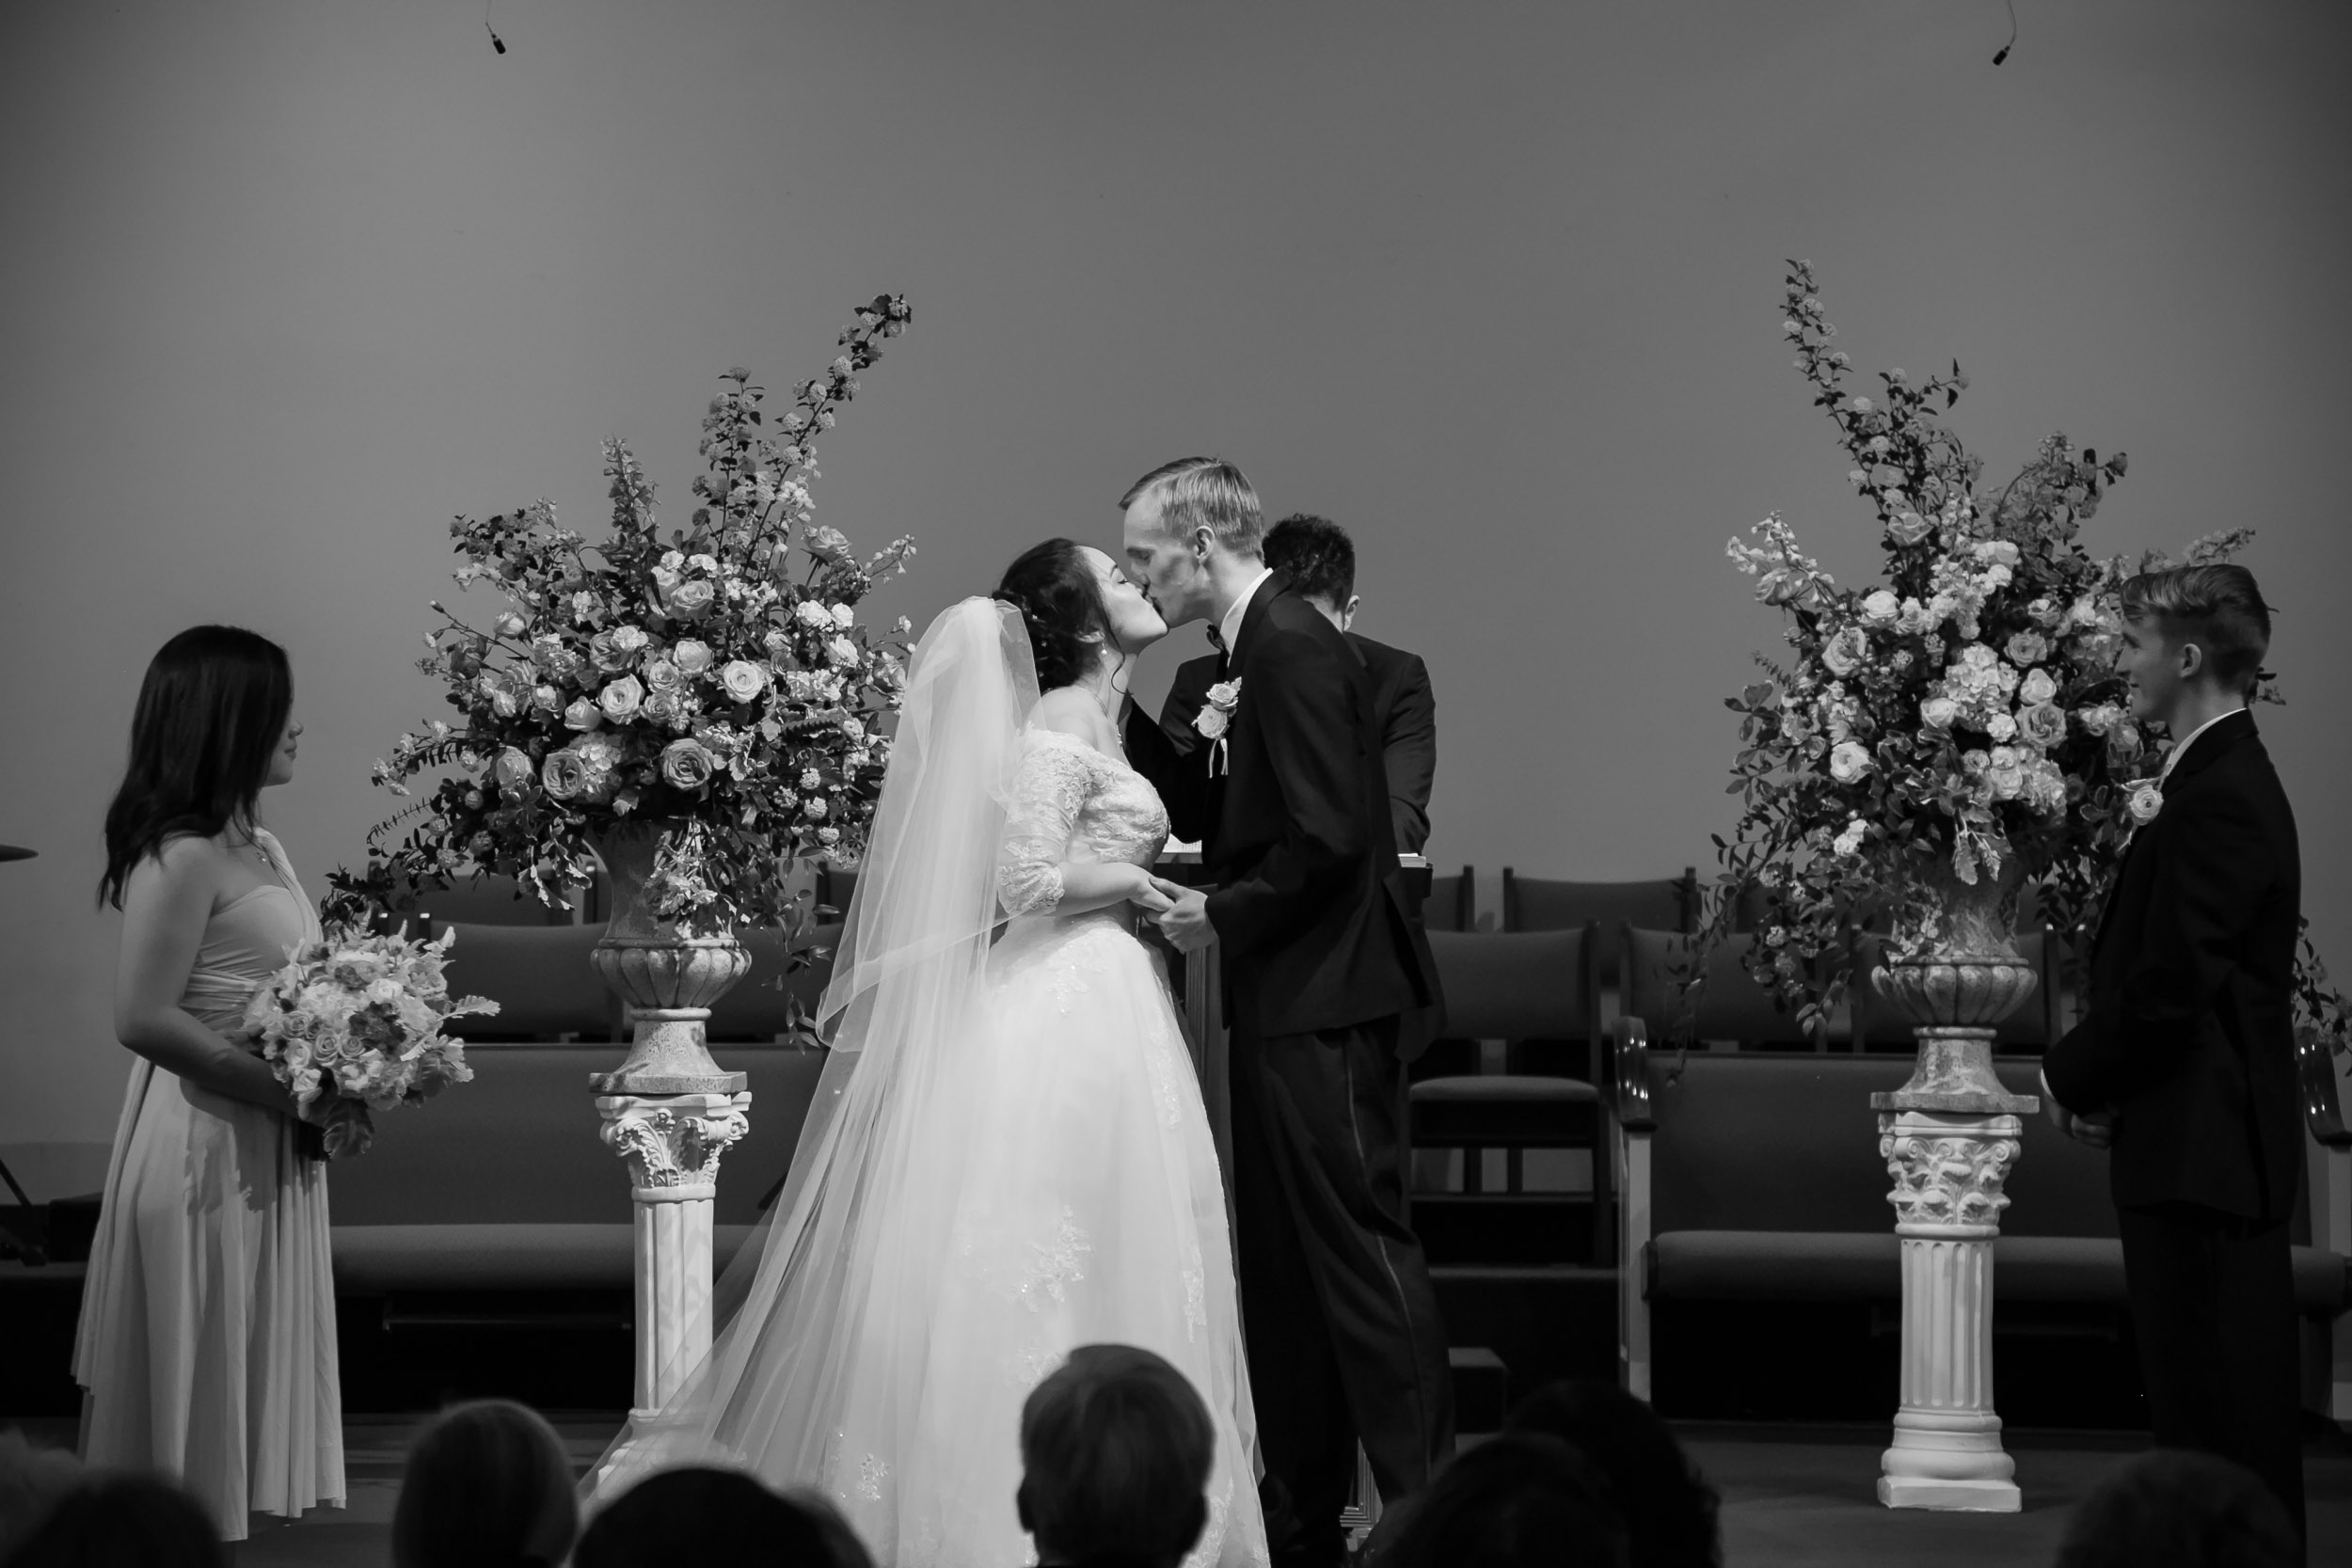 Raleigh Wedding Photographer   G. Lin Photography   Bride and groom's first kiss